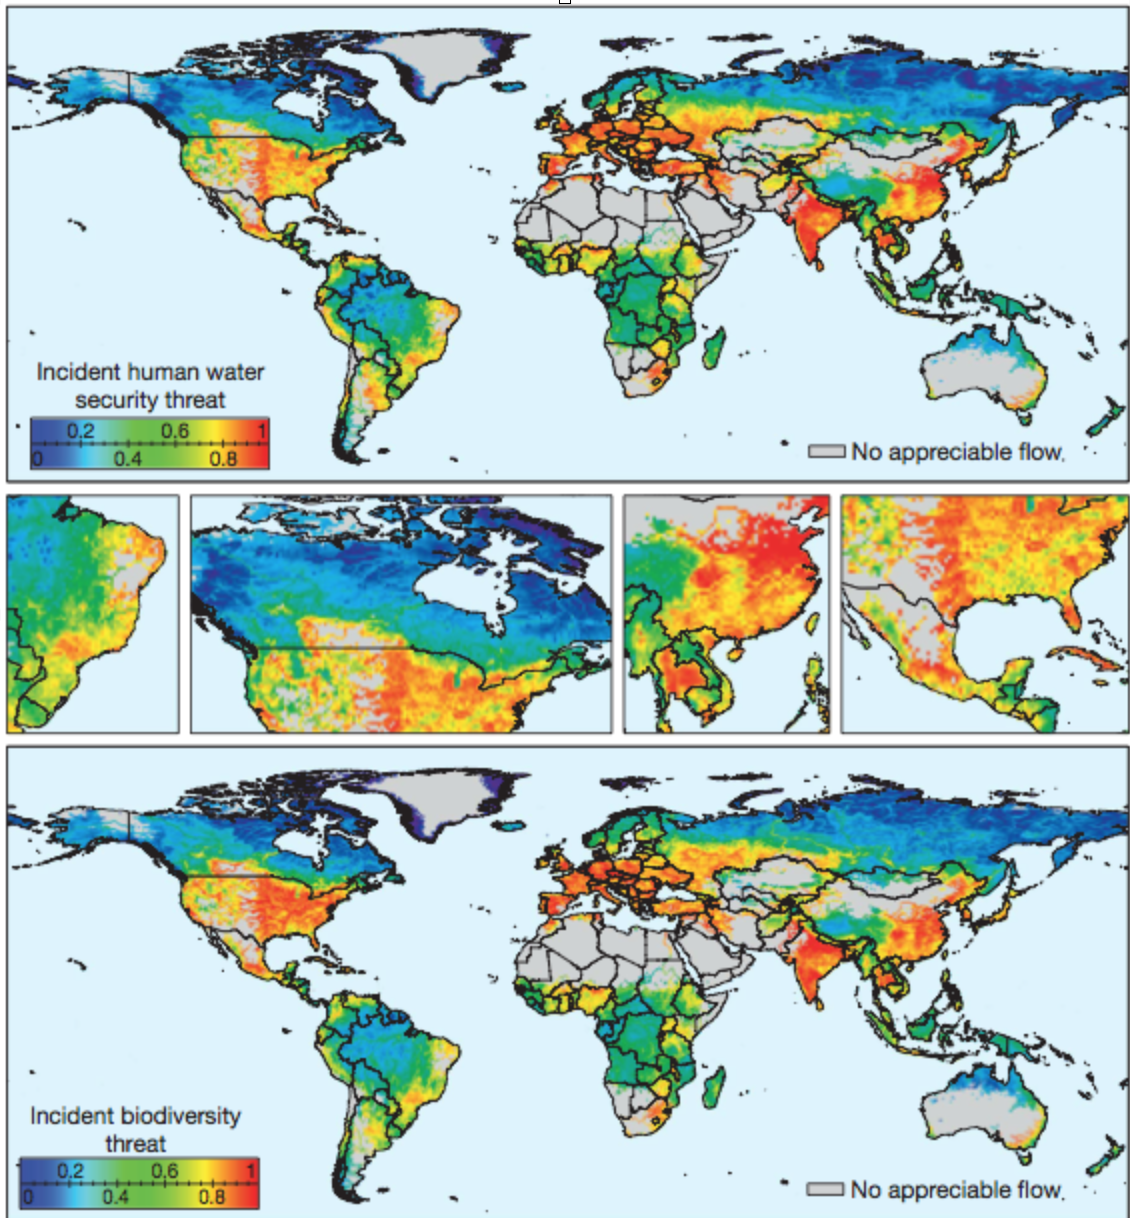 Vörösmarty, C. J., McIntyre, P. B., Gessner, M. O., Dudgeon, D., Prusevich, A., Green, P., Davies, P. M. (2010). Global threats to human water security and river biodiversity.  Nature.  Vol. 468, pp. 555-561. In this landmark study, the authors found a strong correlation between the severity of water security threats for humans, on one hand, and biodiversity, on the other.